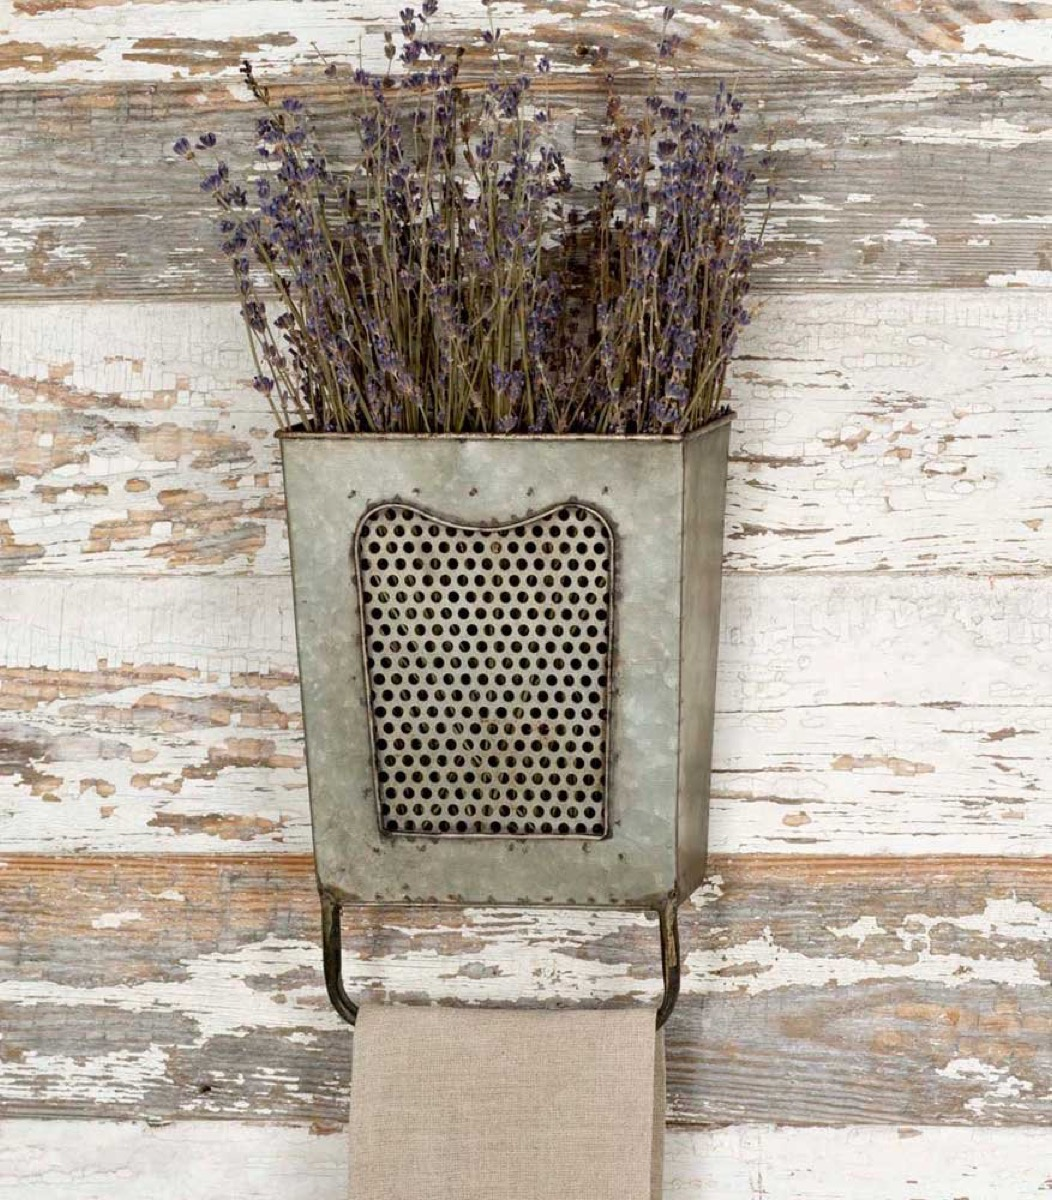 metal bucket with dried flowers on chipped wall, rustic farmhouse decor